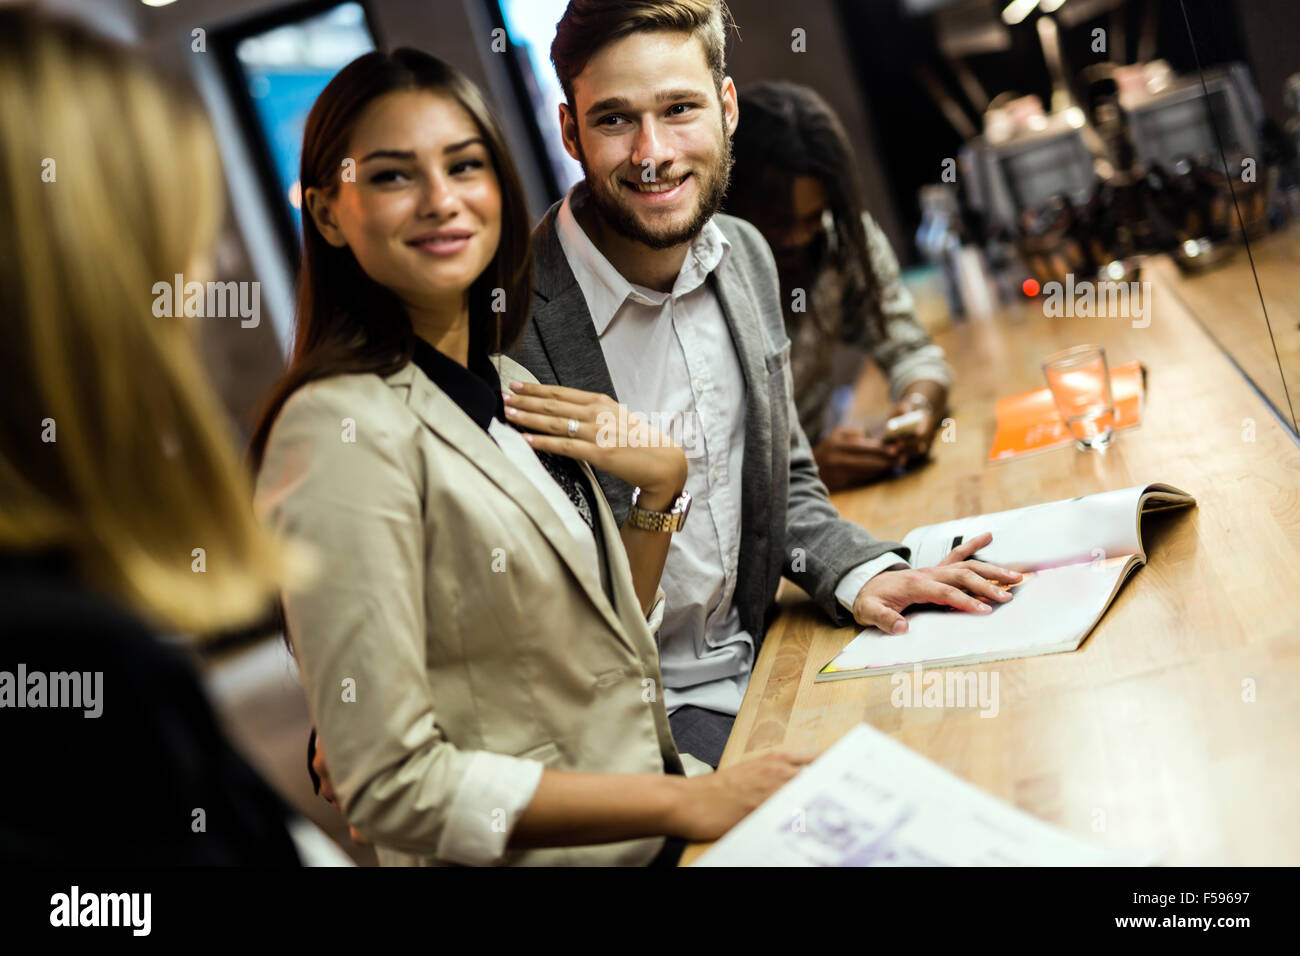 Business people in a pub relaxing and having fun Stock Photo